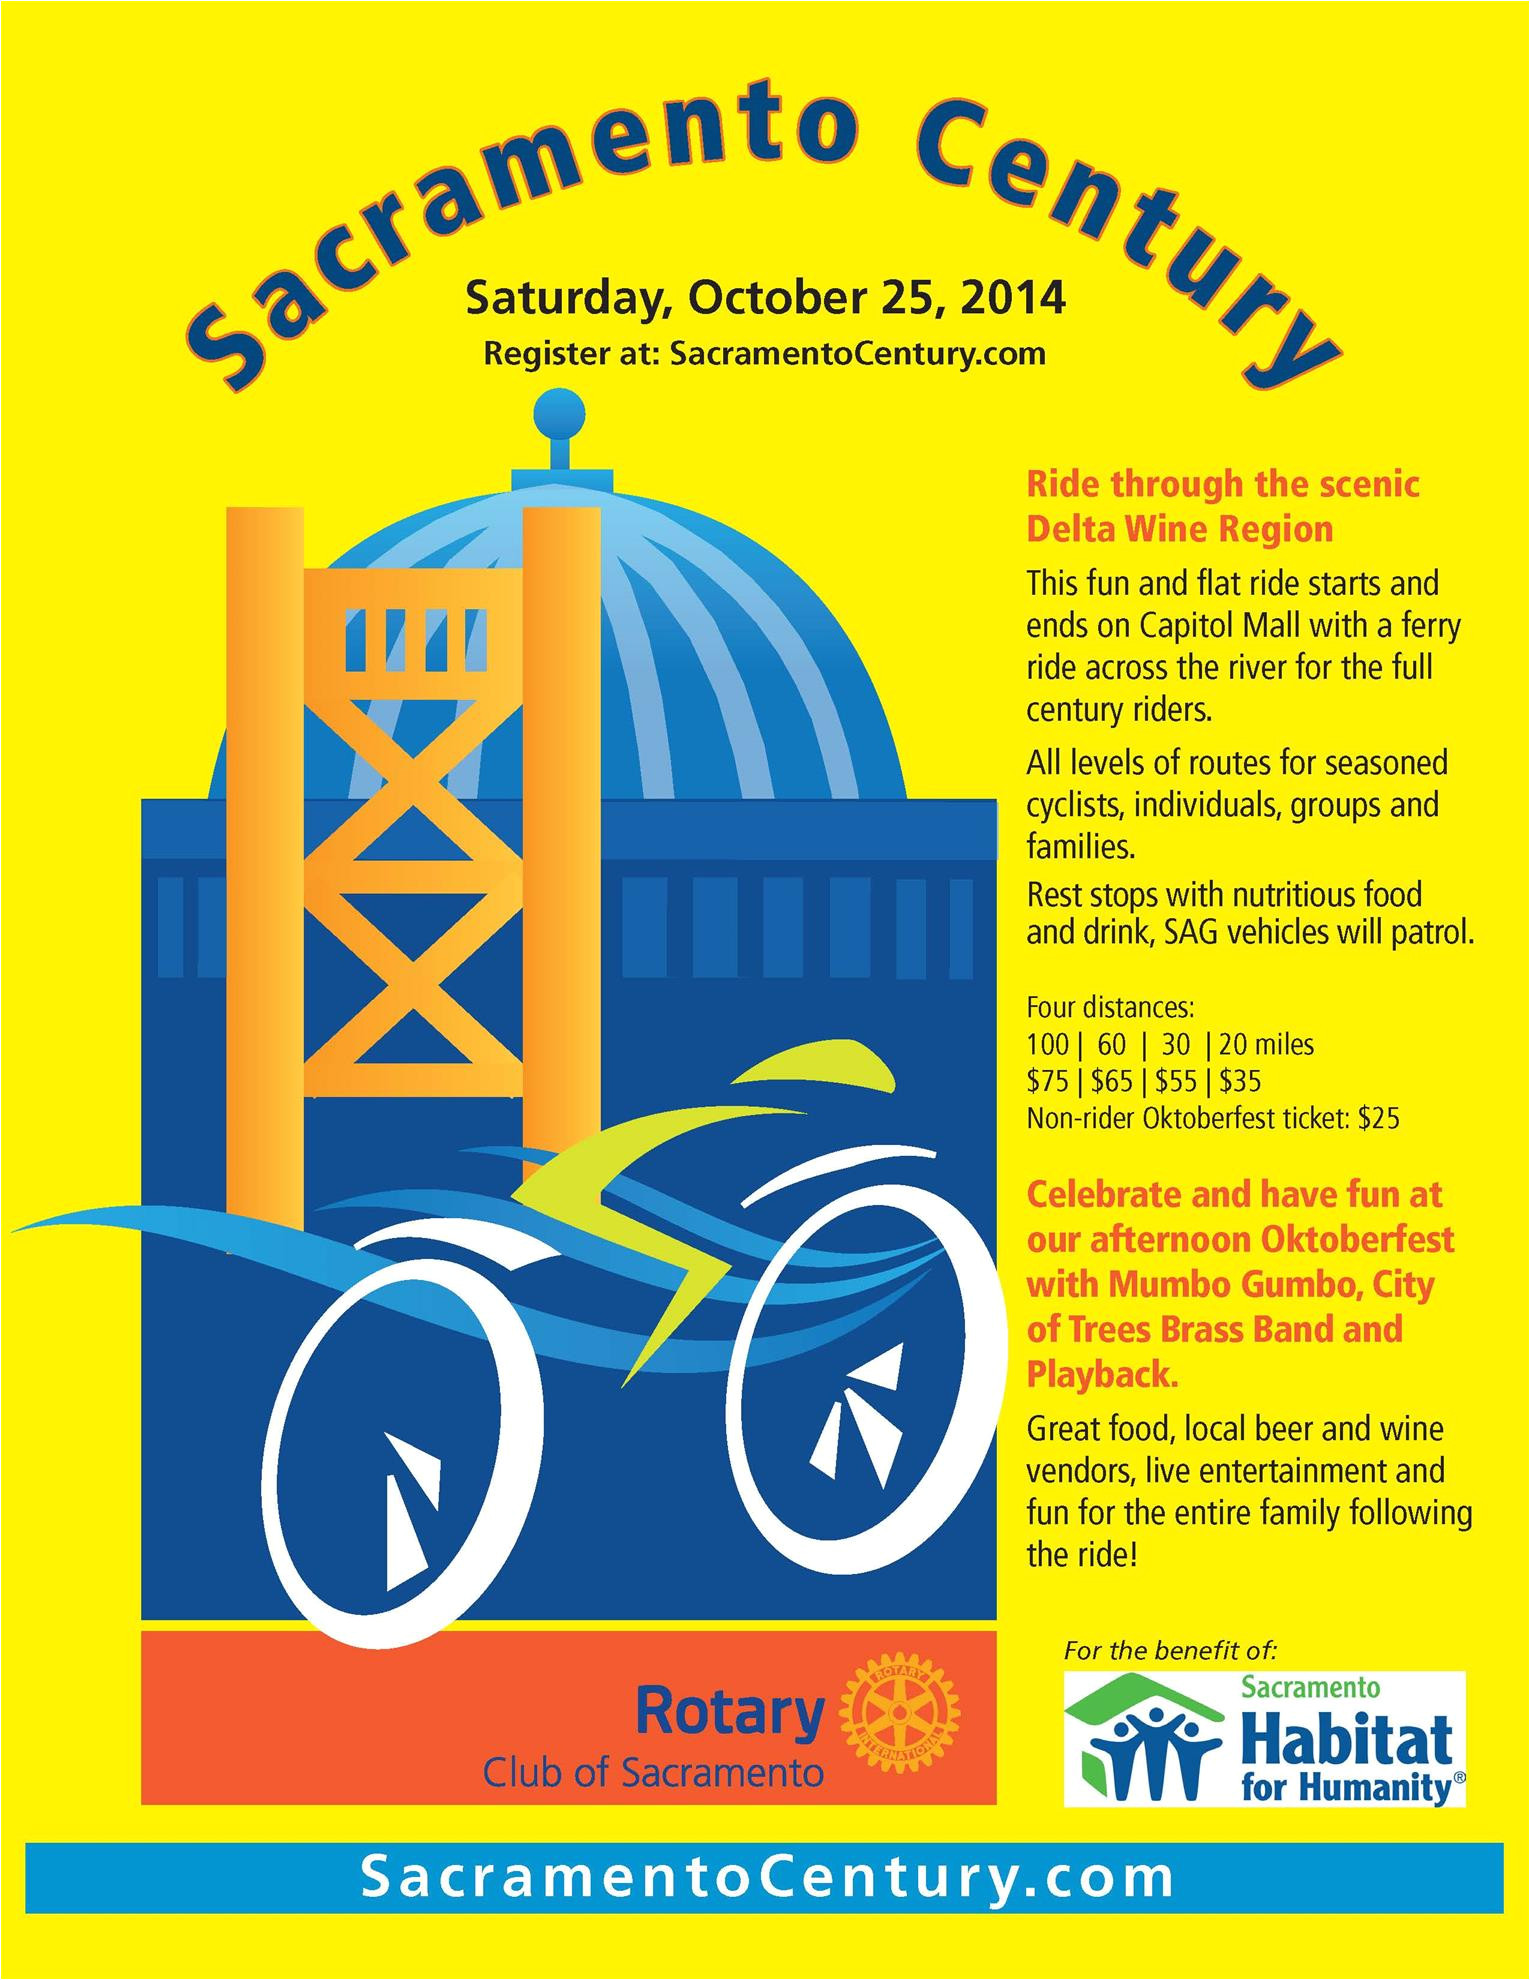 the rotary club of sacramento is pleased to announce its inaugural sacramento century bicycle ride taking place on saturday october 25 2014 on capitol